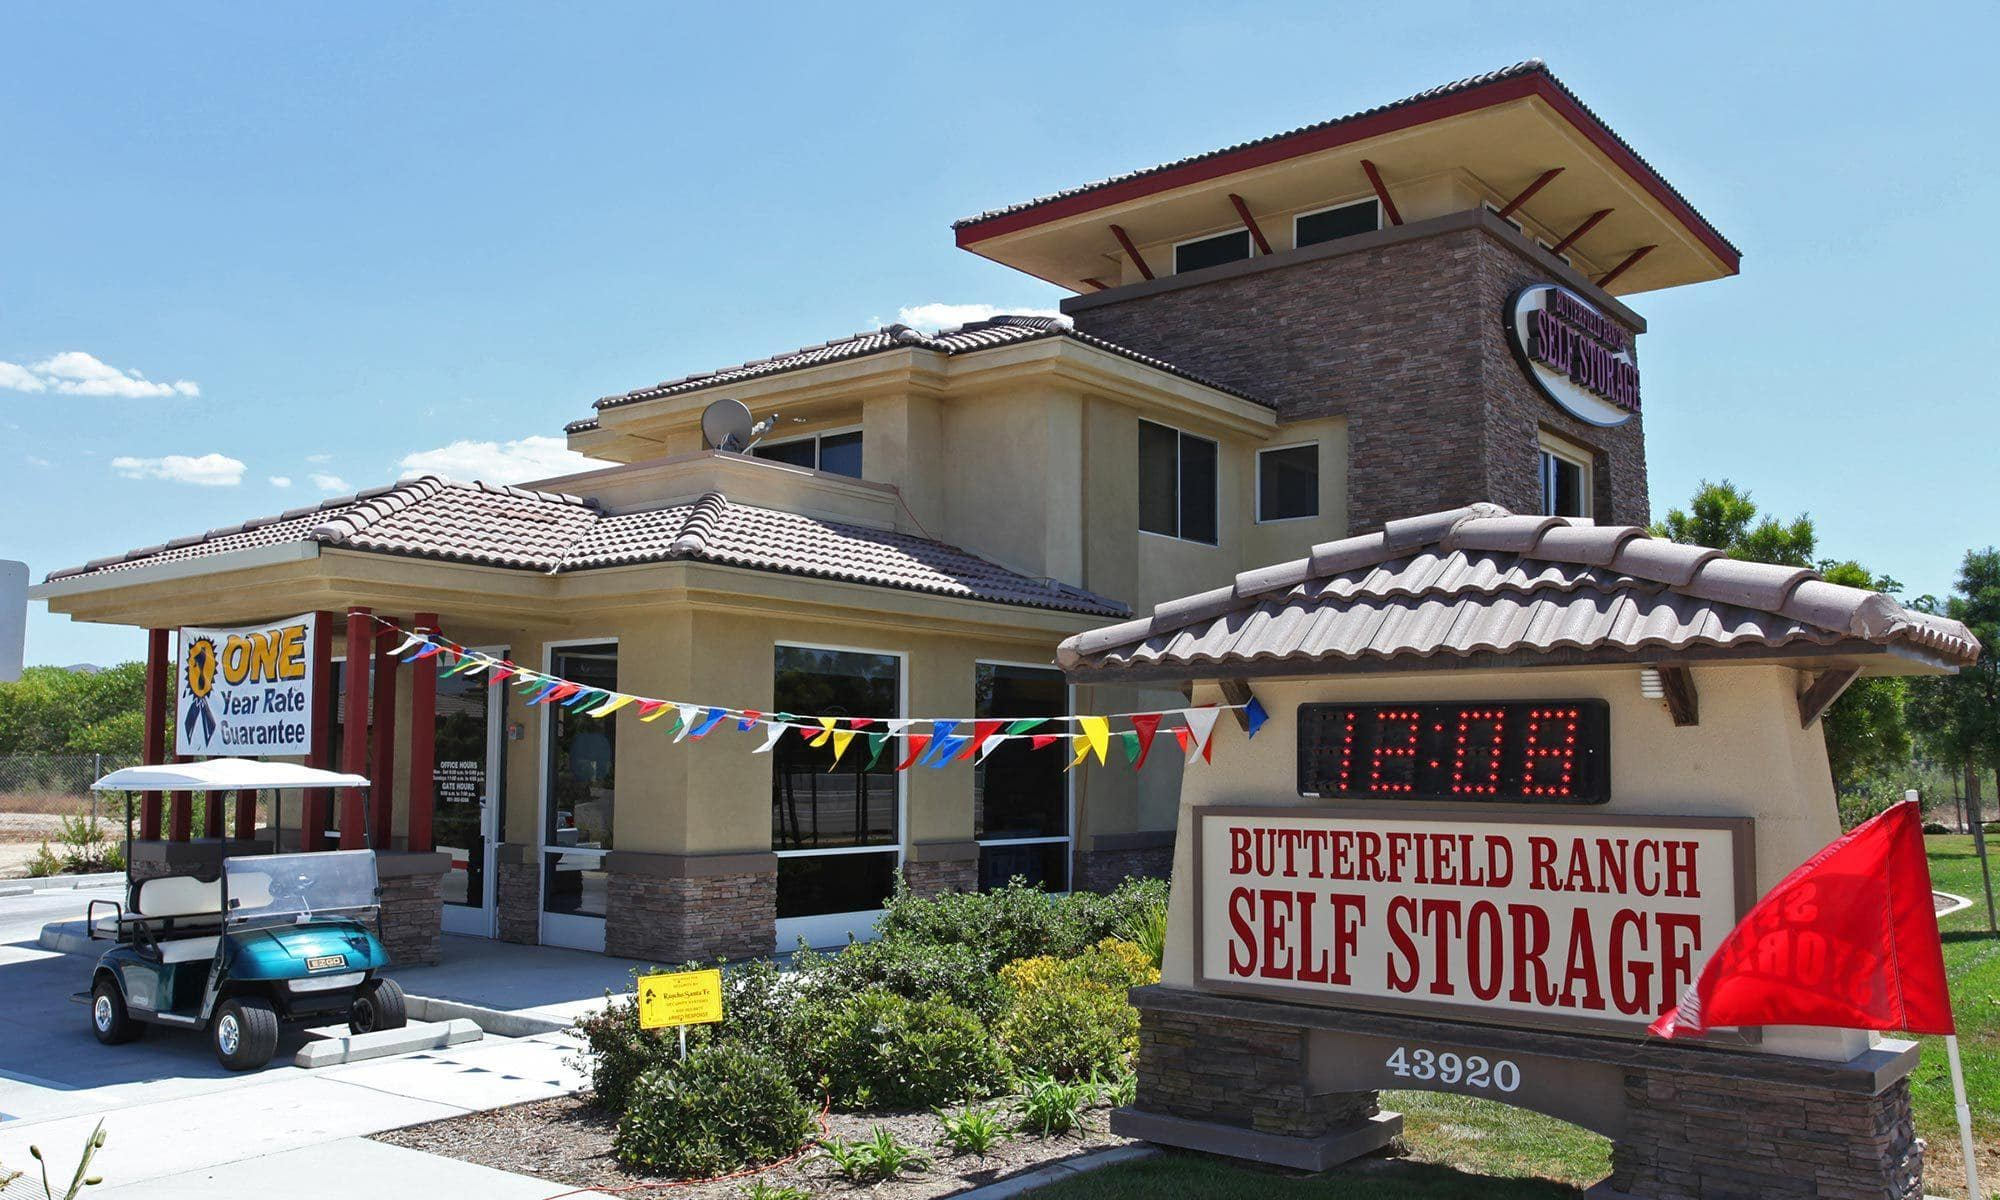 San Go Self Storage Is Home Of The 1st Year Price Guarantee